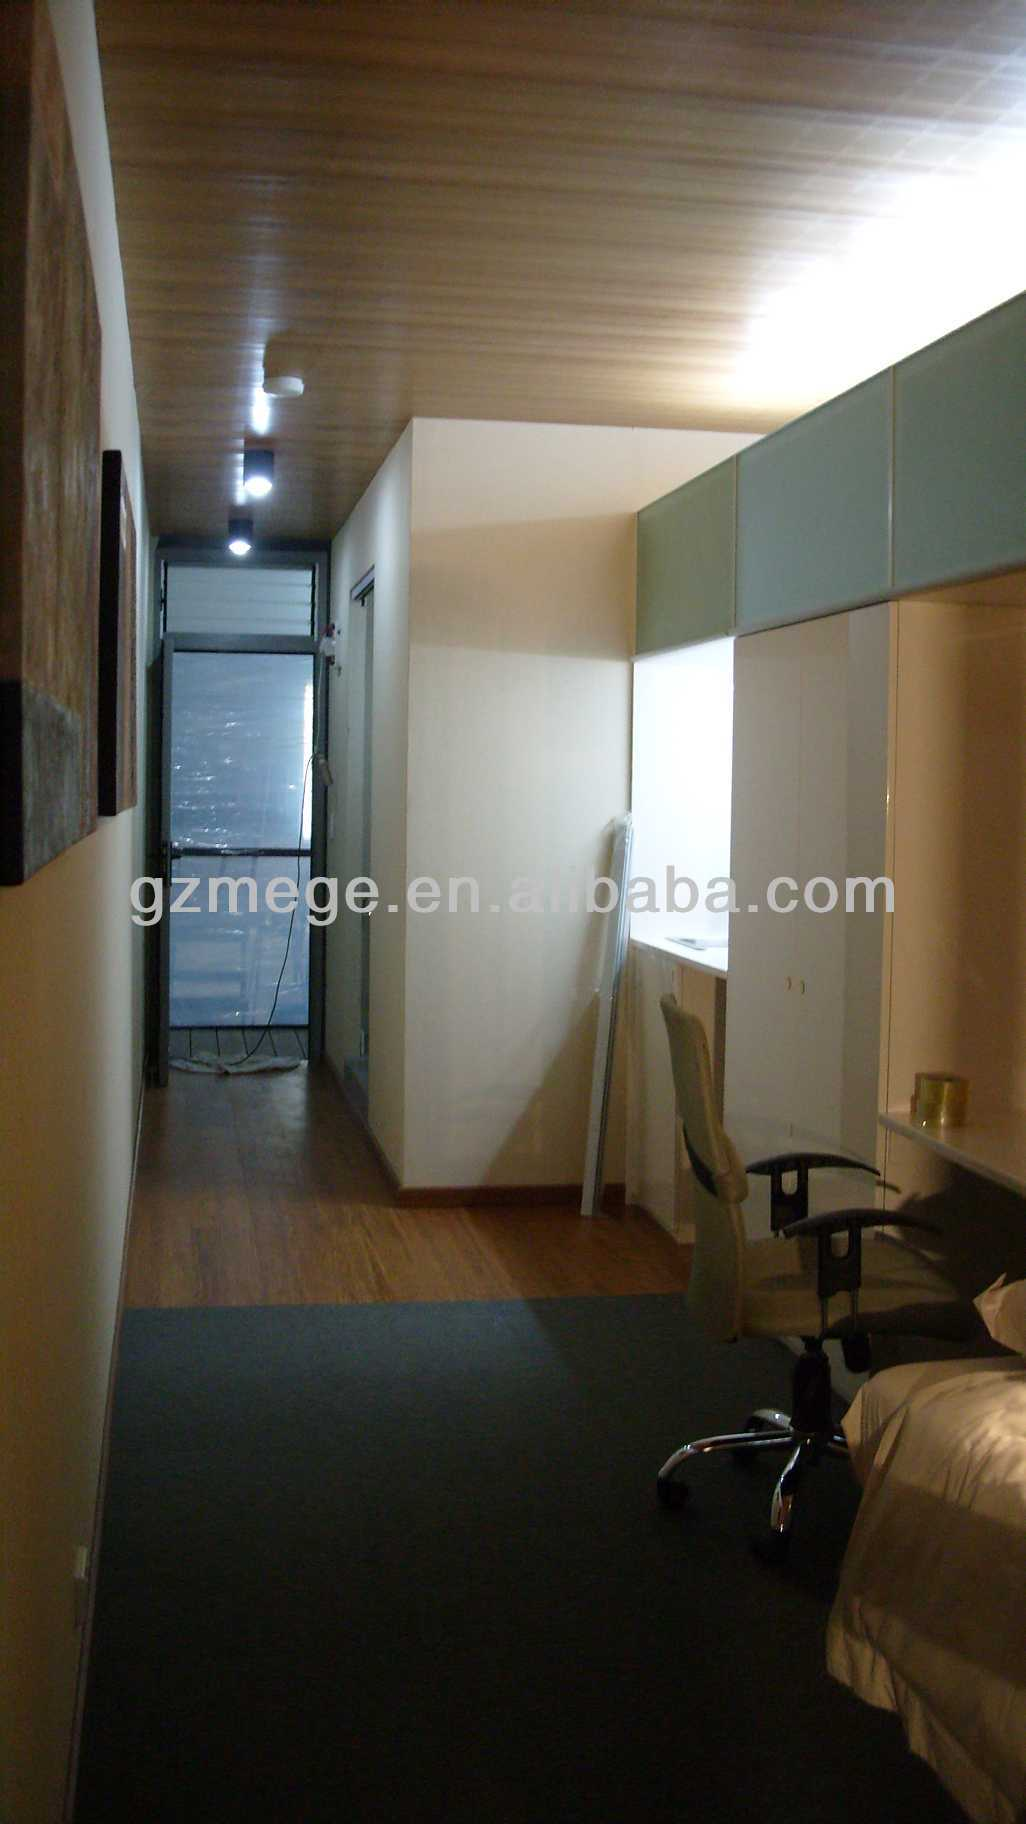 prefabricated furnish apartments for rent